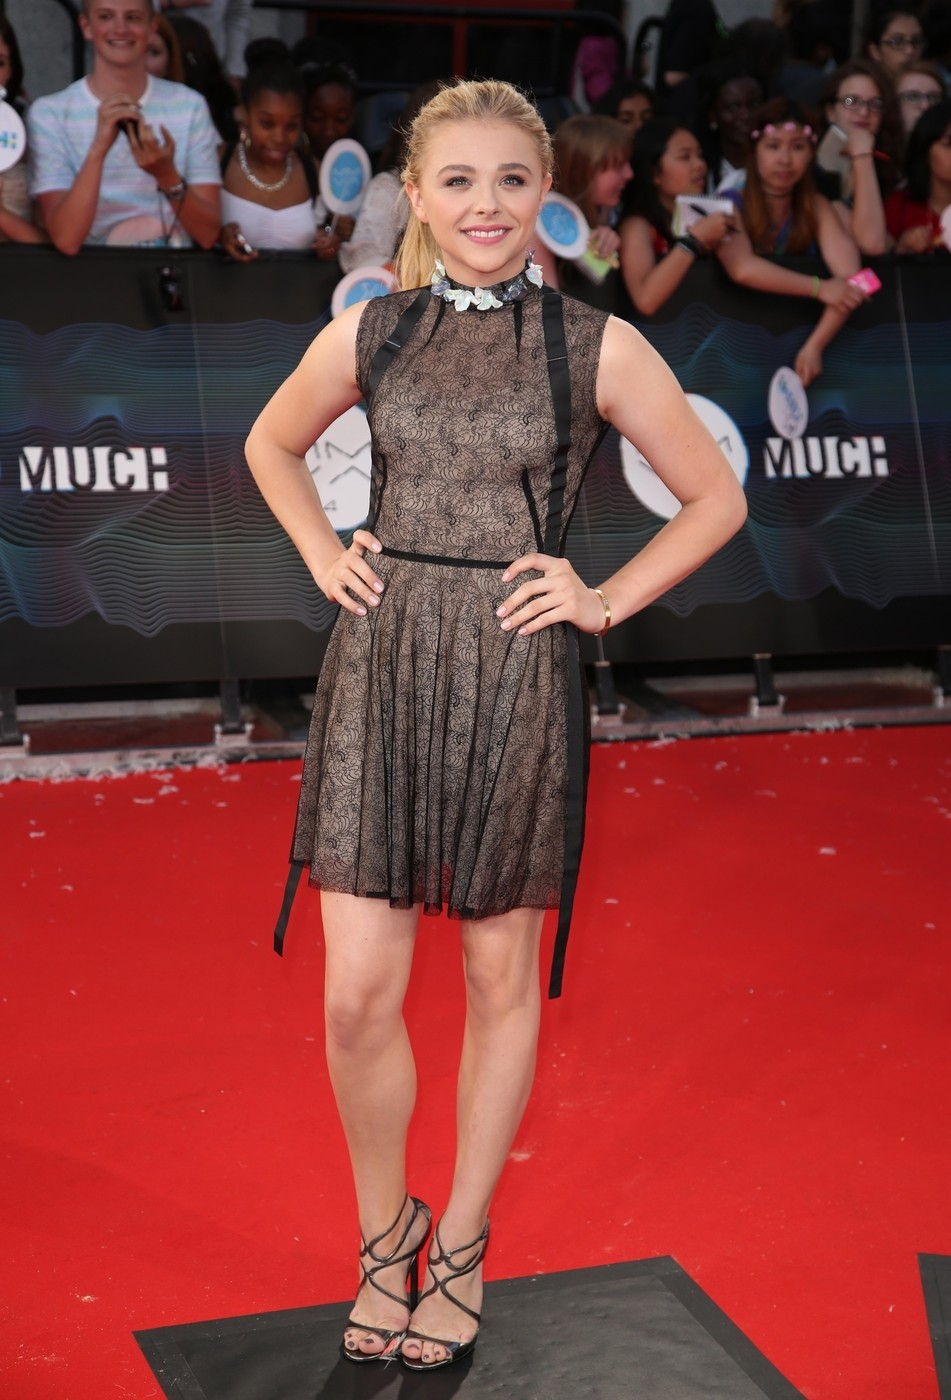 Chloe Grace Moretz walks the red carpet at the MuchMusic Video Awards in Toronto